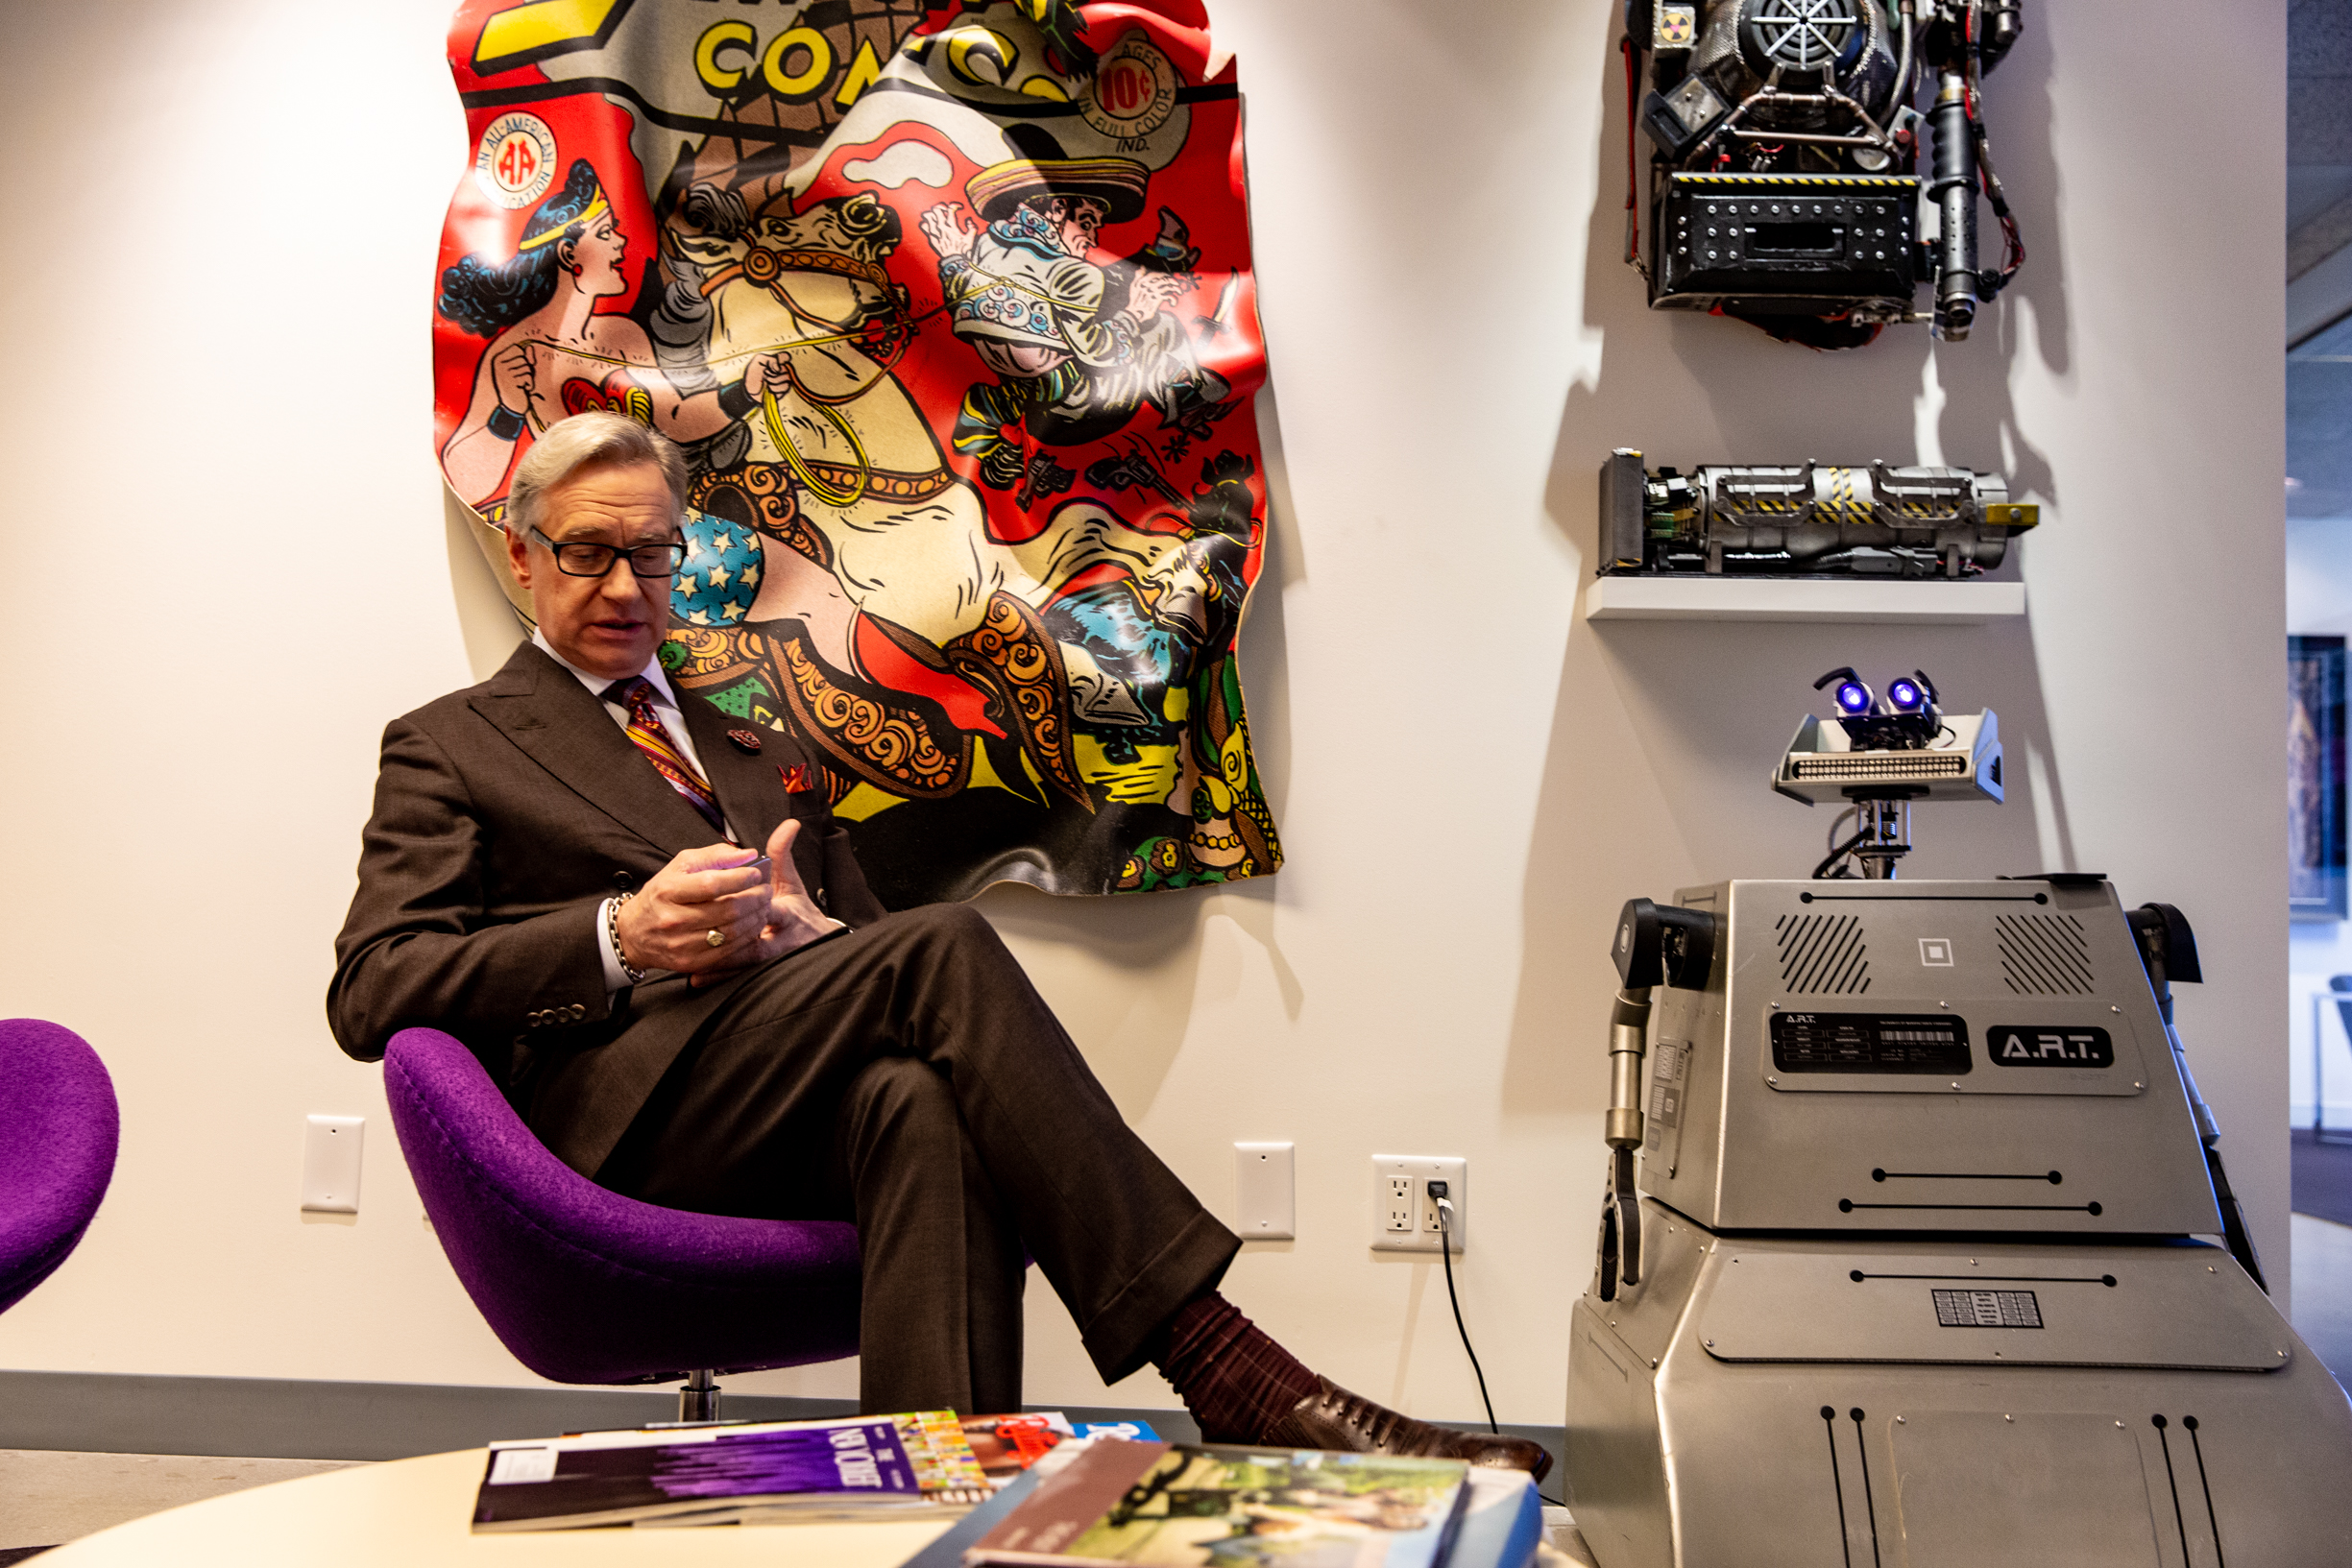 Paul Feig in his office